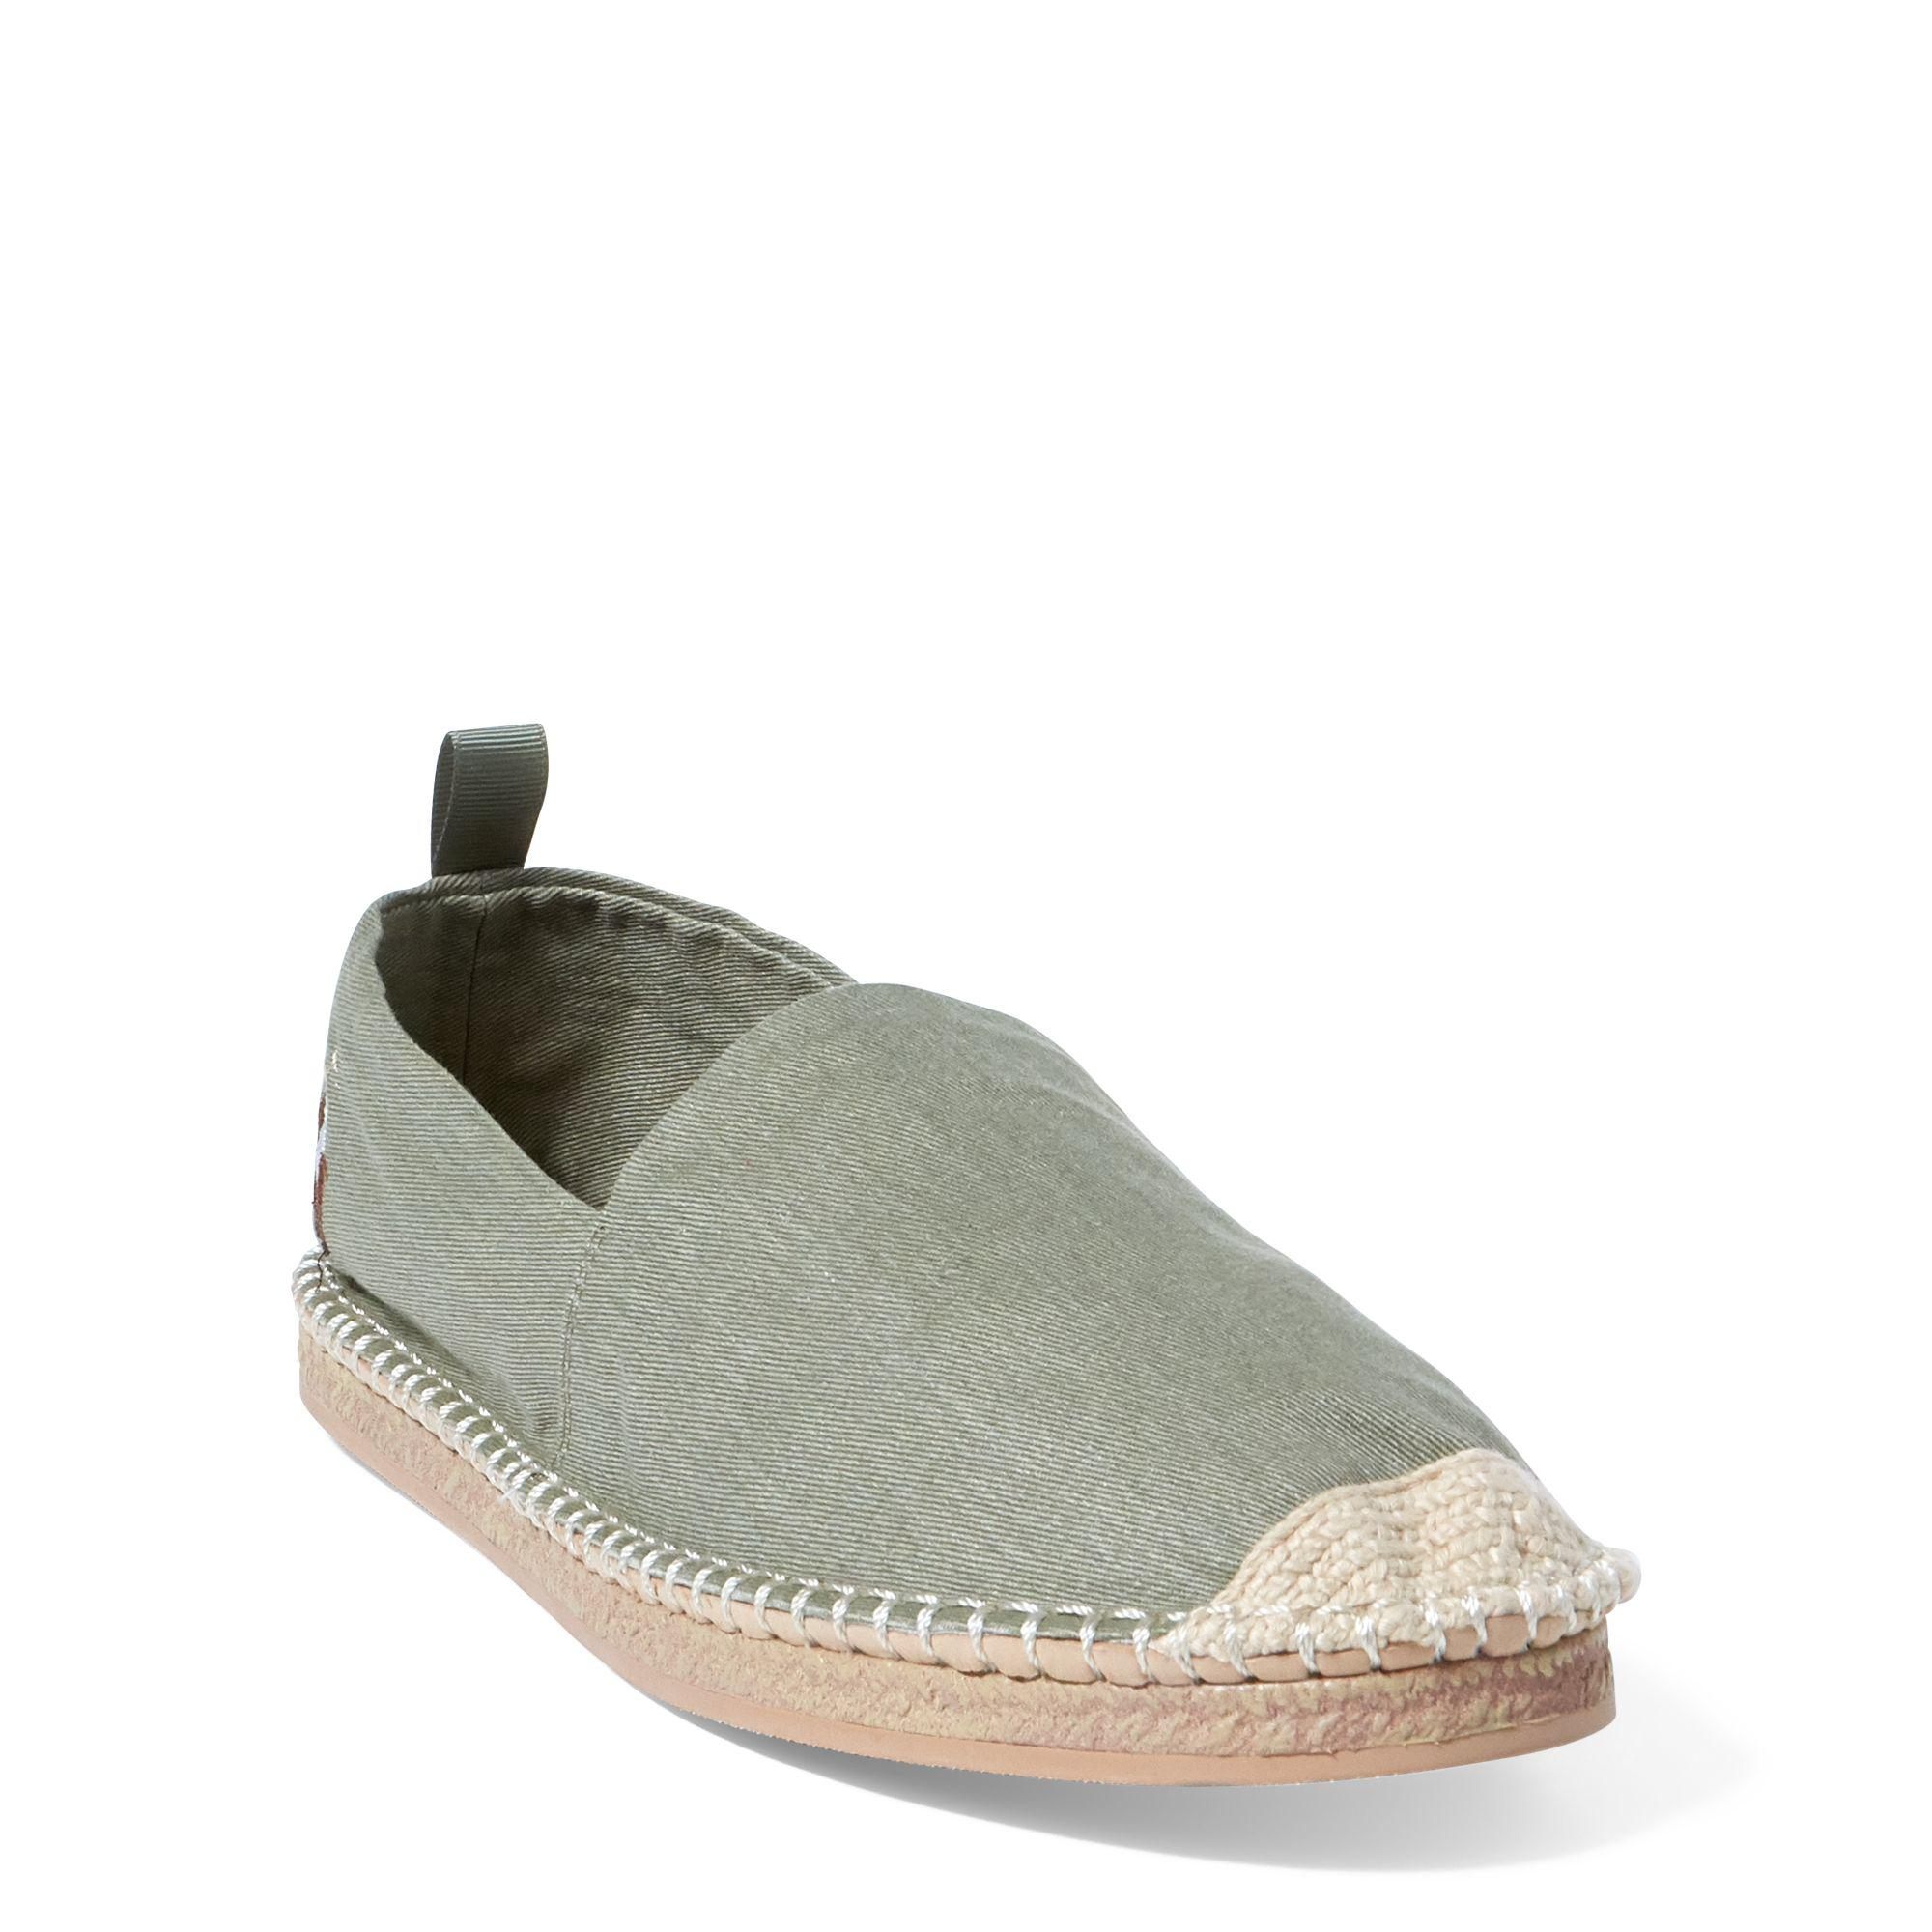 73393d404c6 Lyst - Polo Ralph Lauren Barron Washed Twill Espadrille in Green